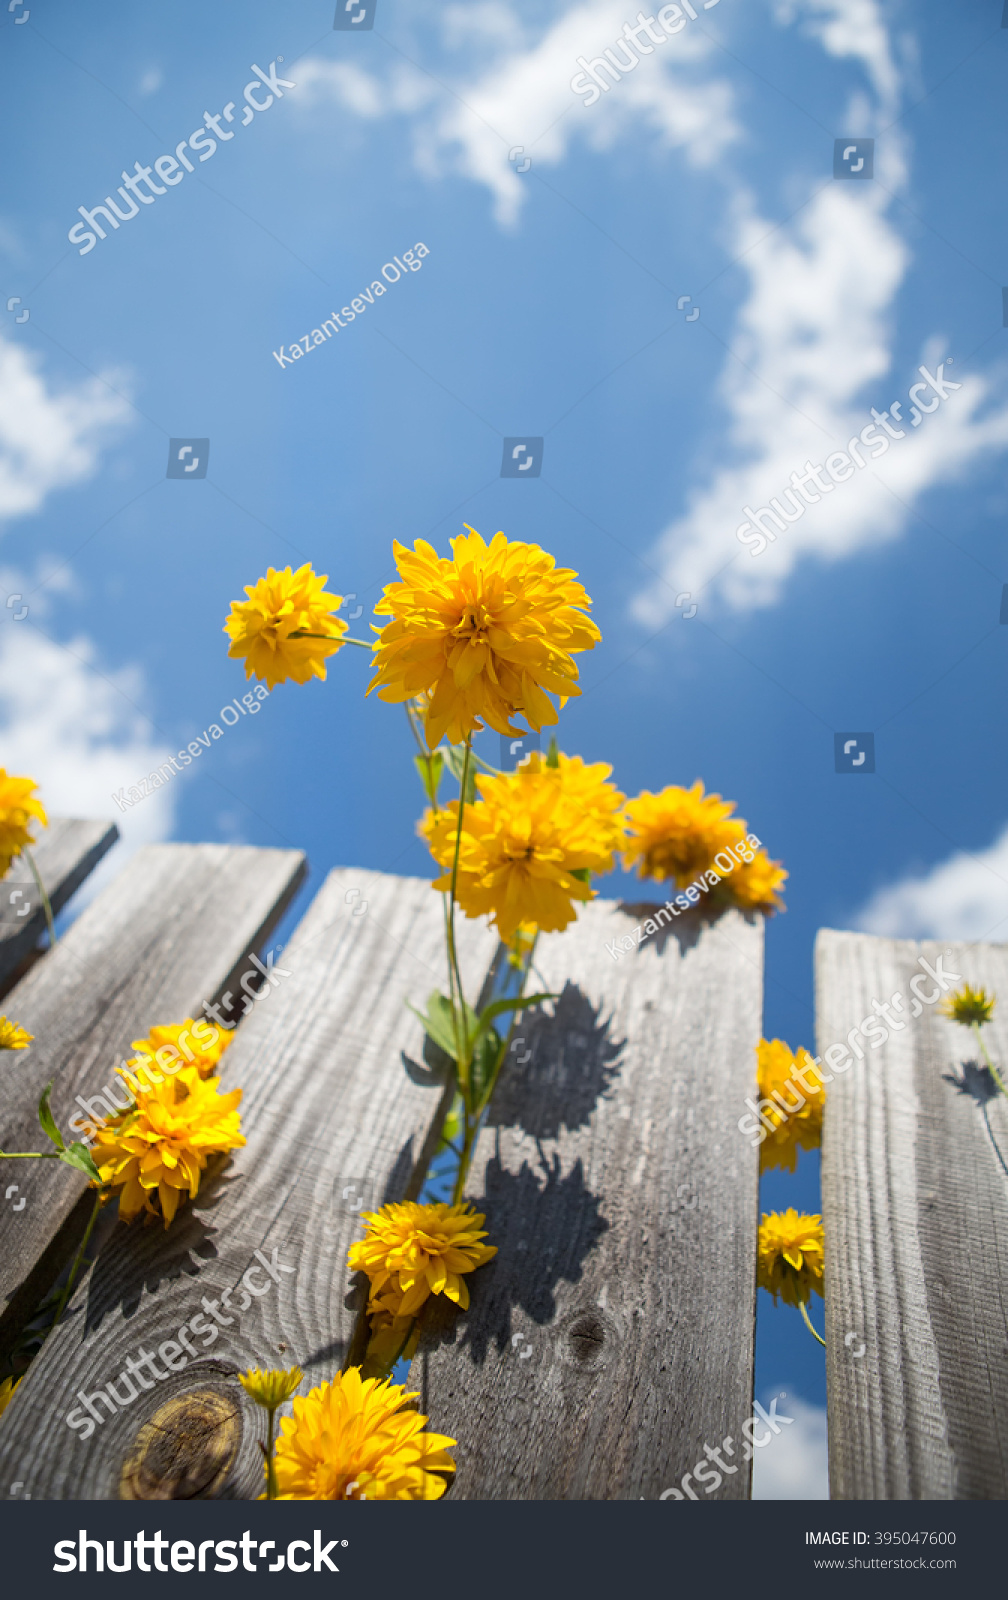 Yellow flowers shape ball grow wooden stock photo 395047600 yellow flowers in the shape of a ball grow from a wooden fence on a background mightylinksfo